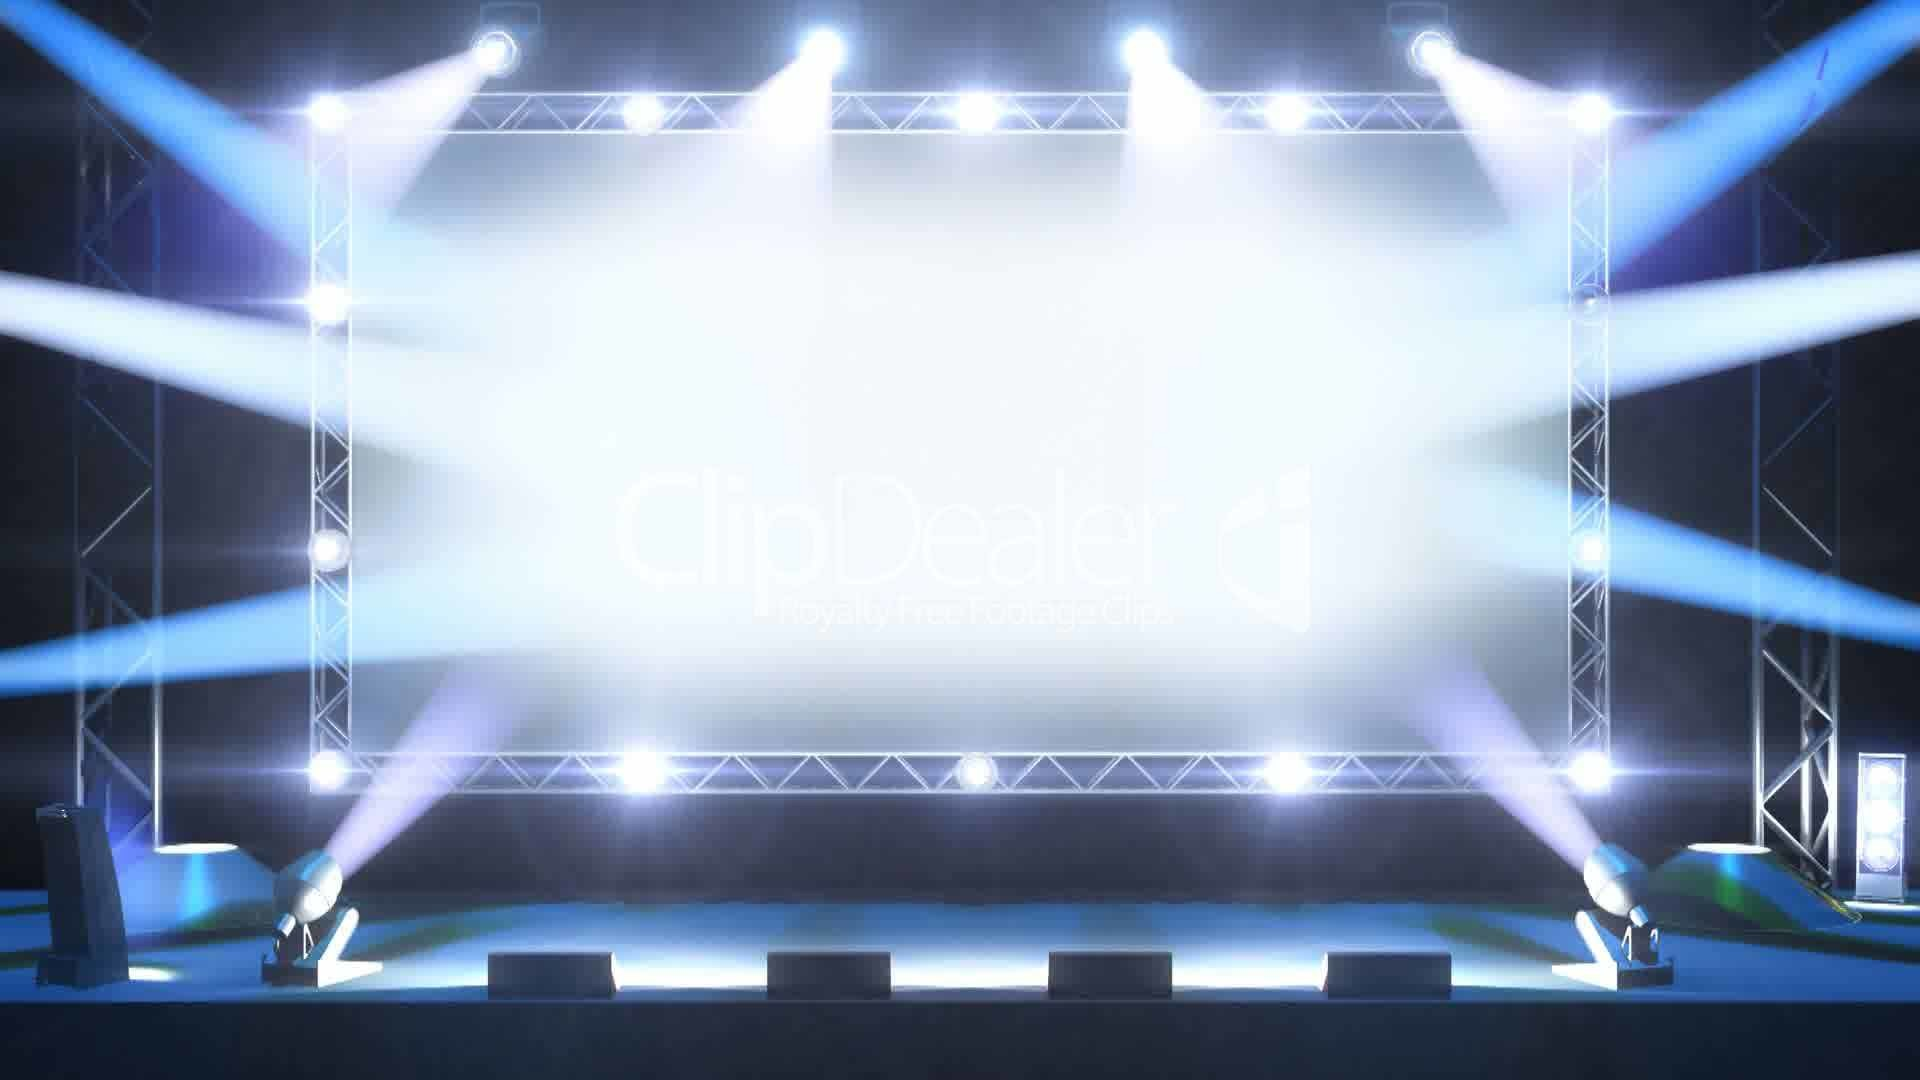 Stage Lighting Wallpaper 68 Images